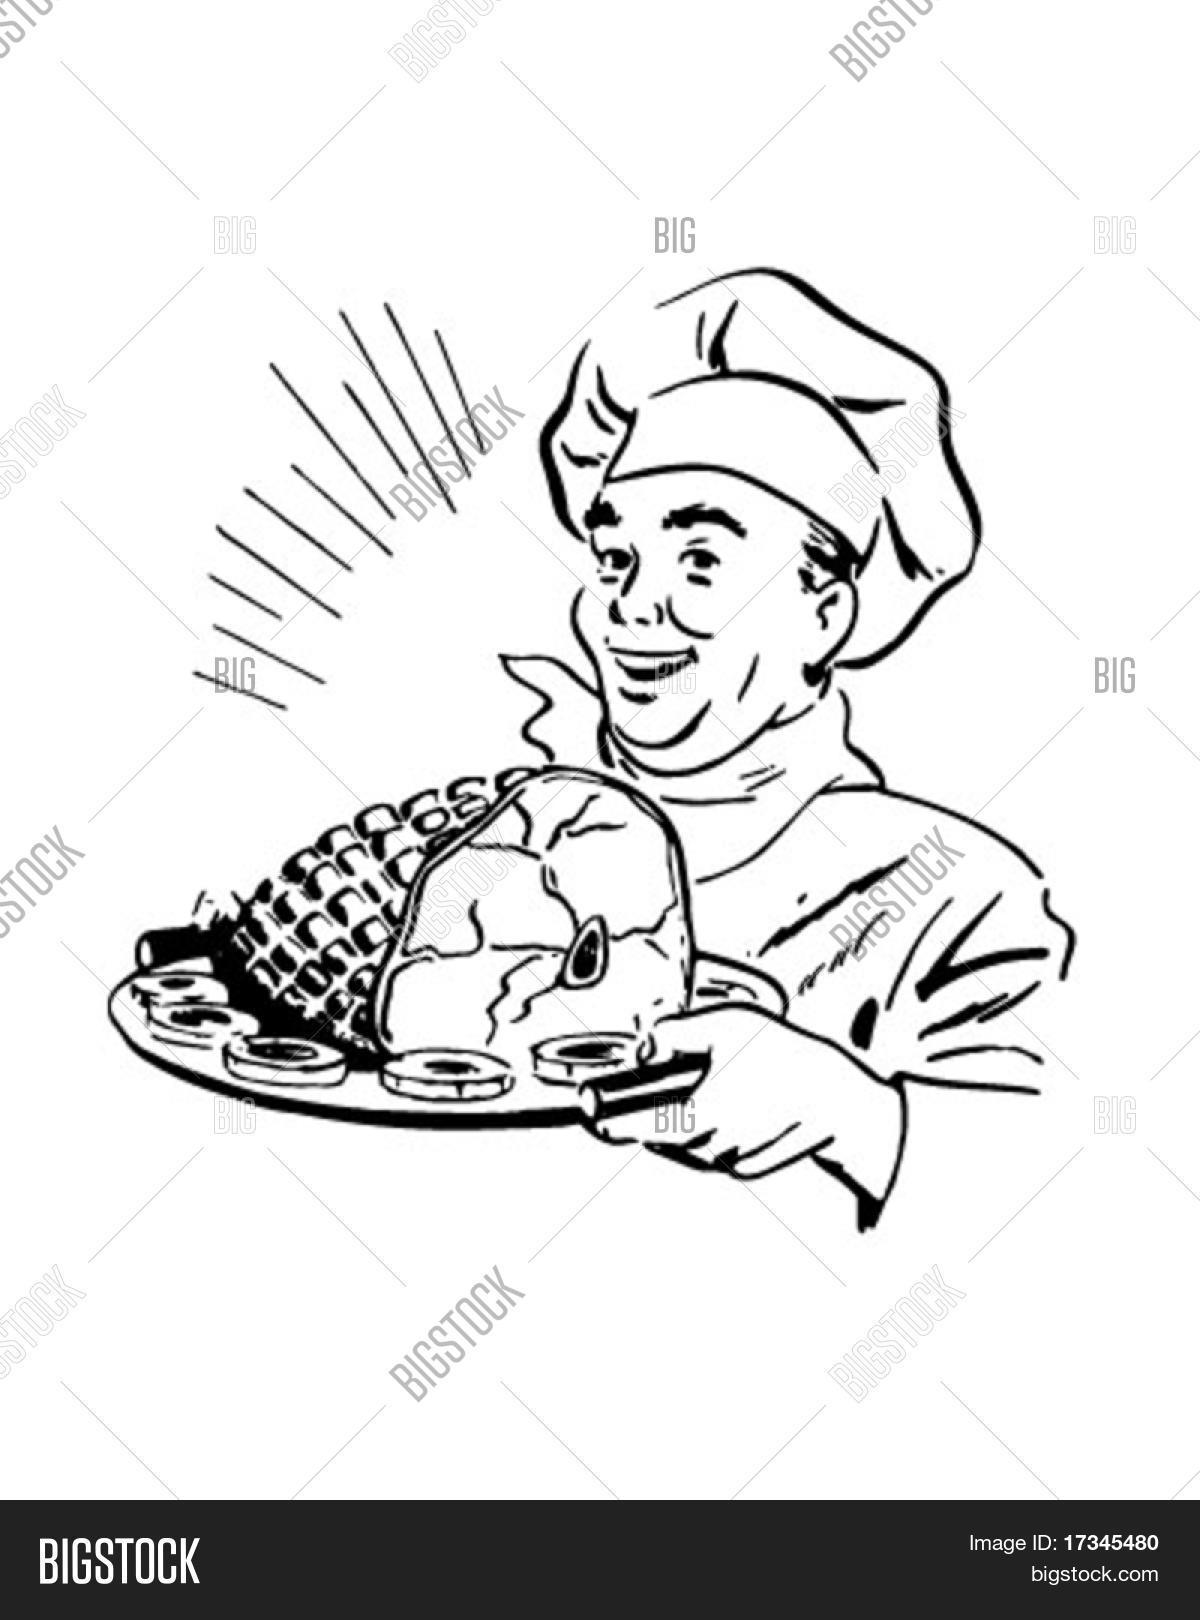 Chef With Ham - Retro Clip Art Stock Vector & Stock Photos | Bigstock